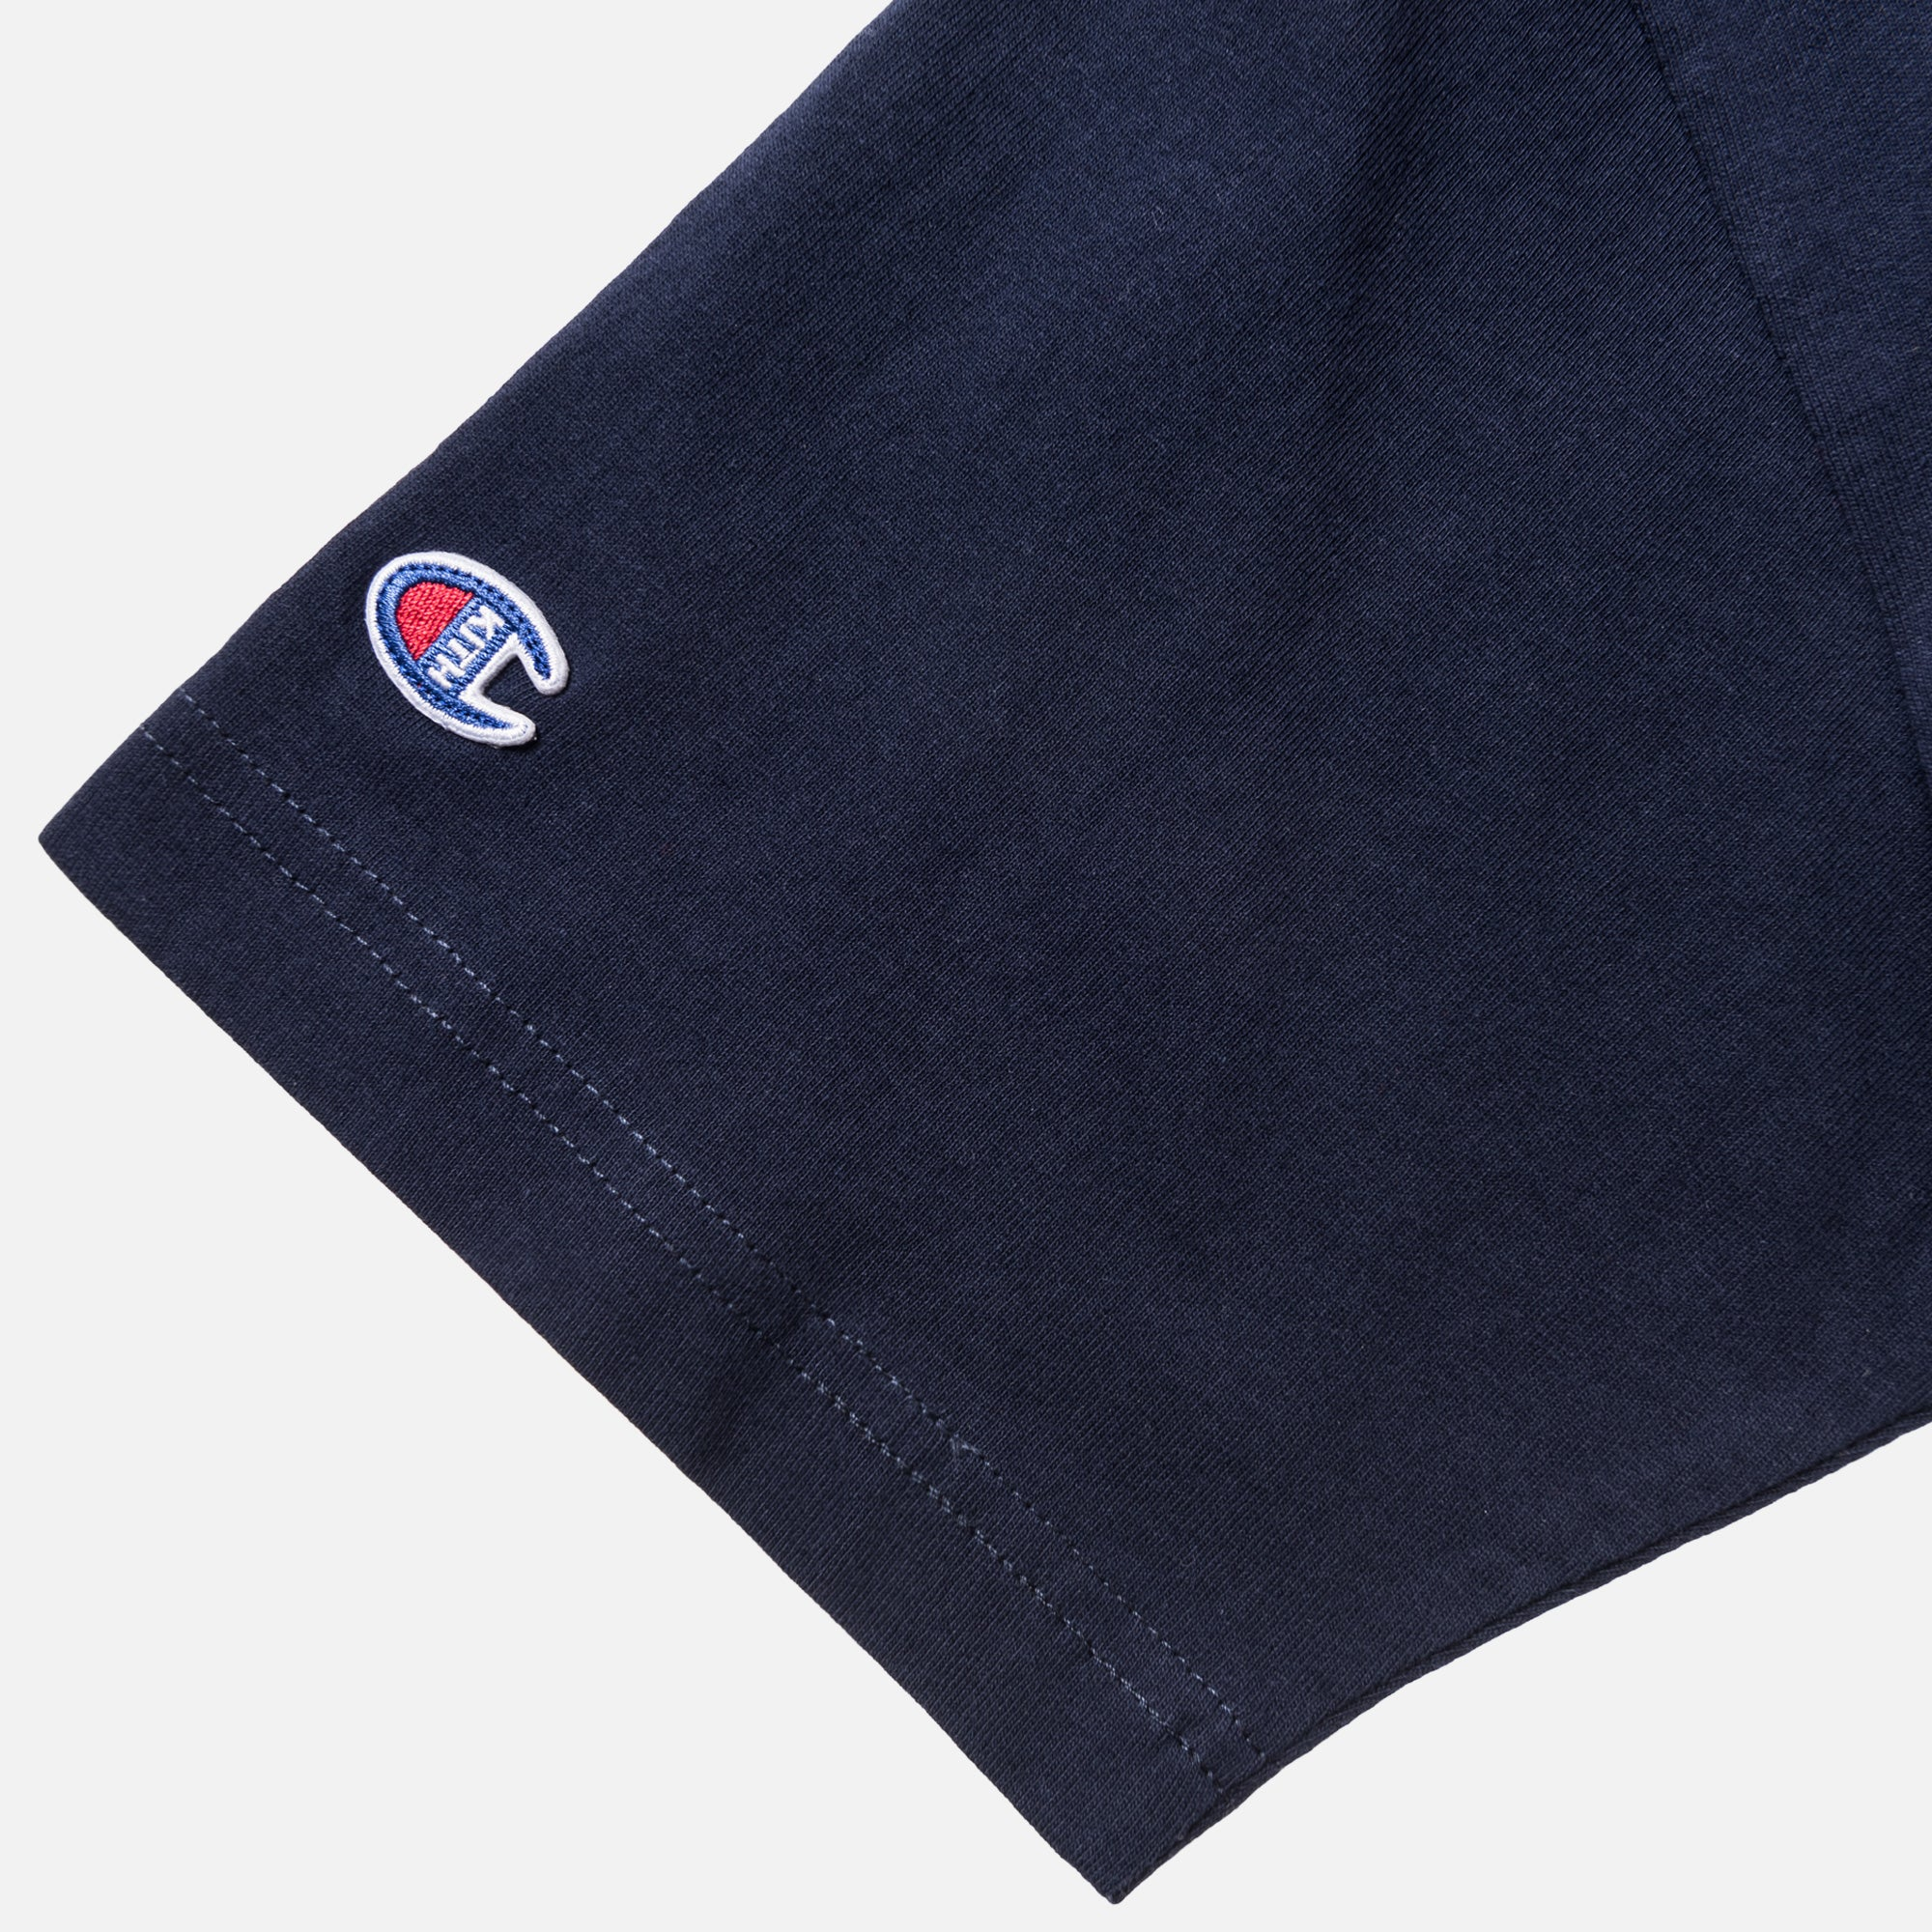 Kith x Champion C Patch Tee - Navy